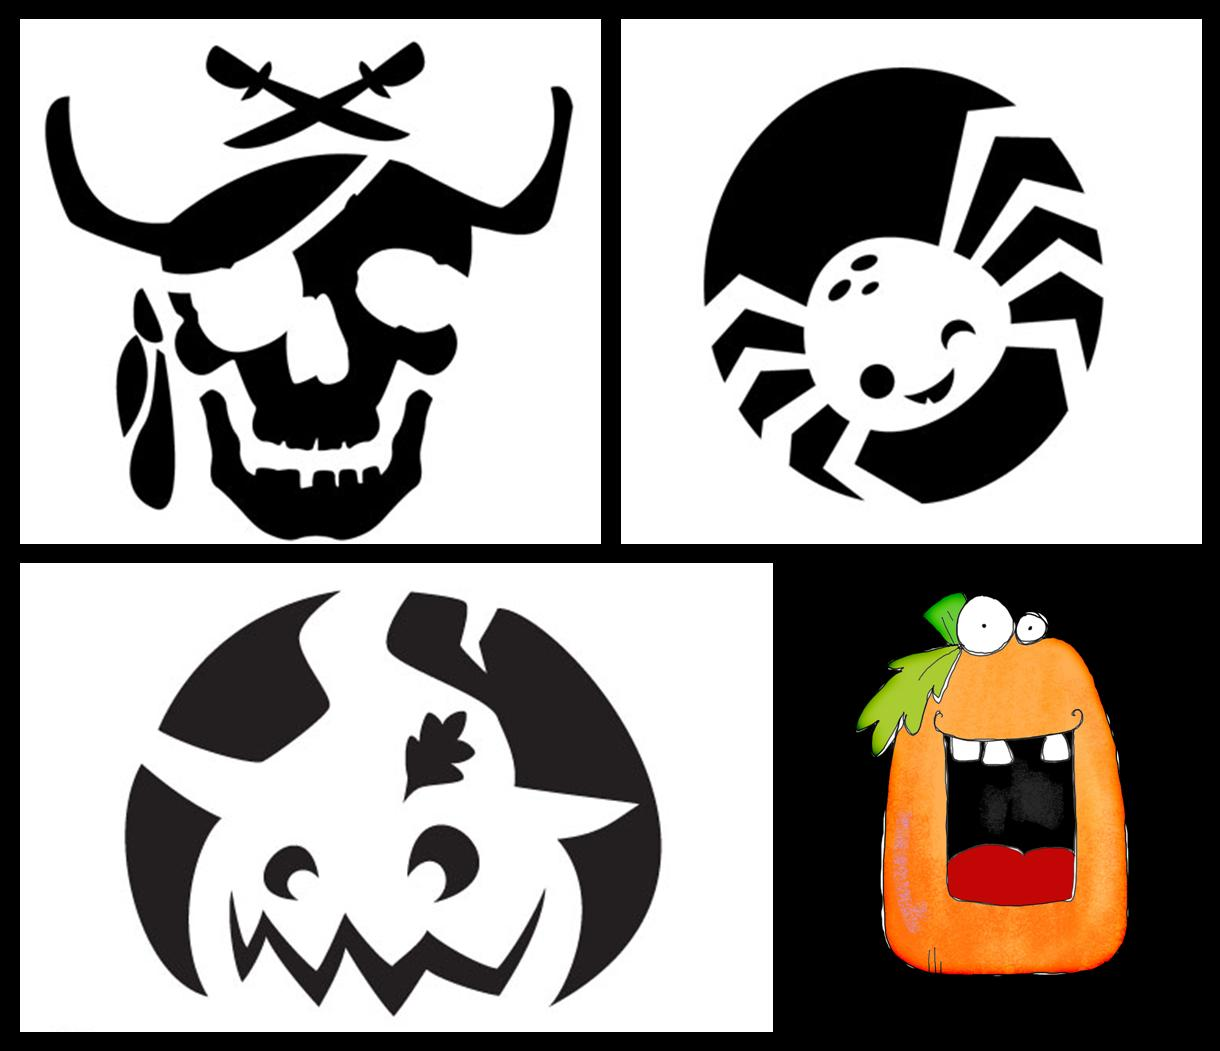 Cute Photography Love: Halloween Pumpkin Carving Patterns Ideas